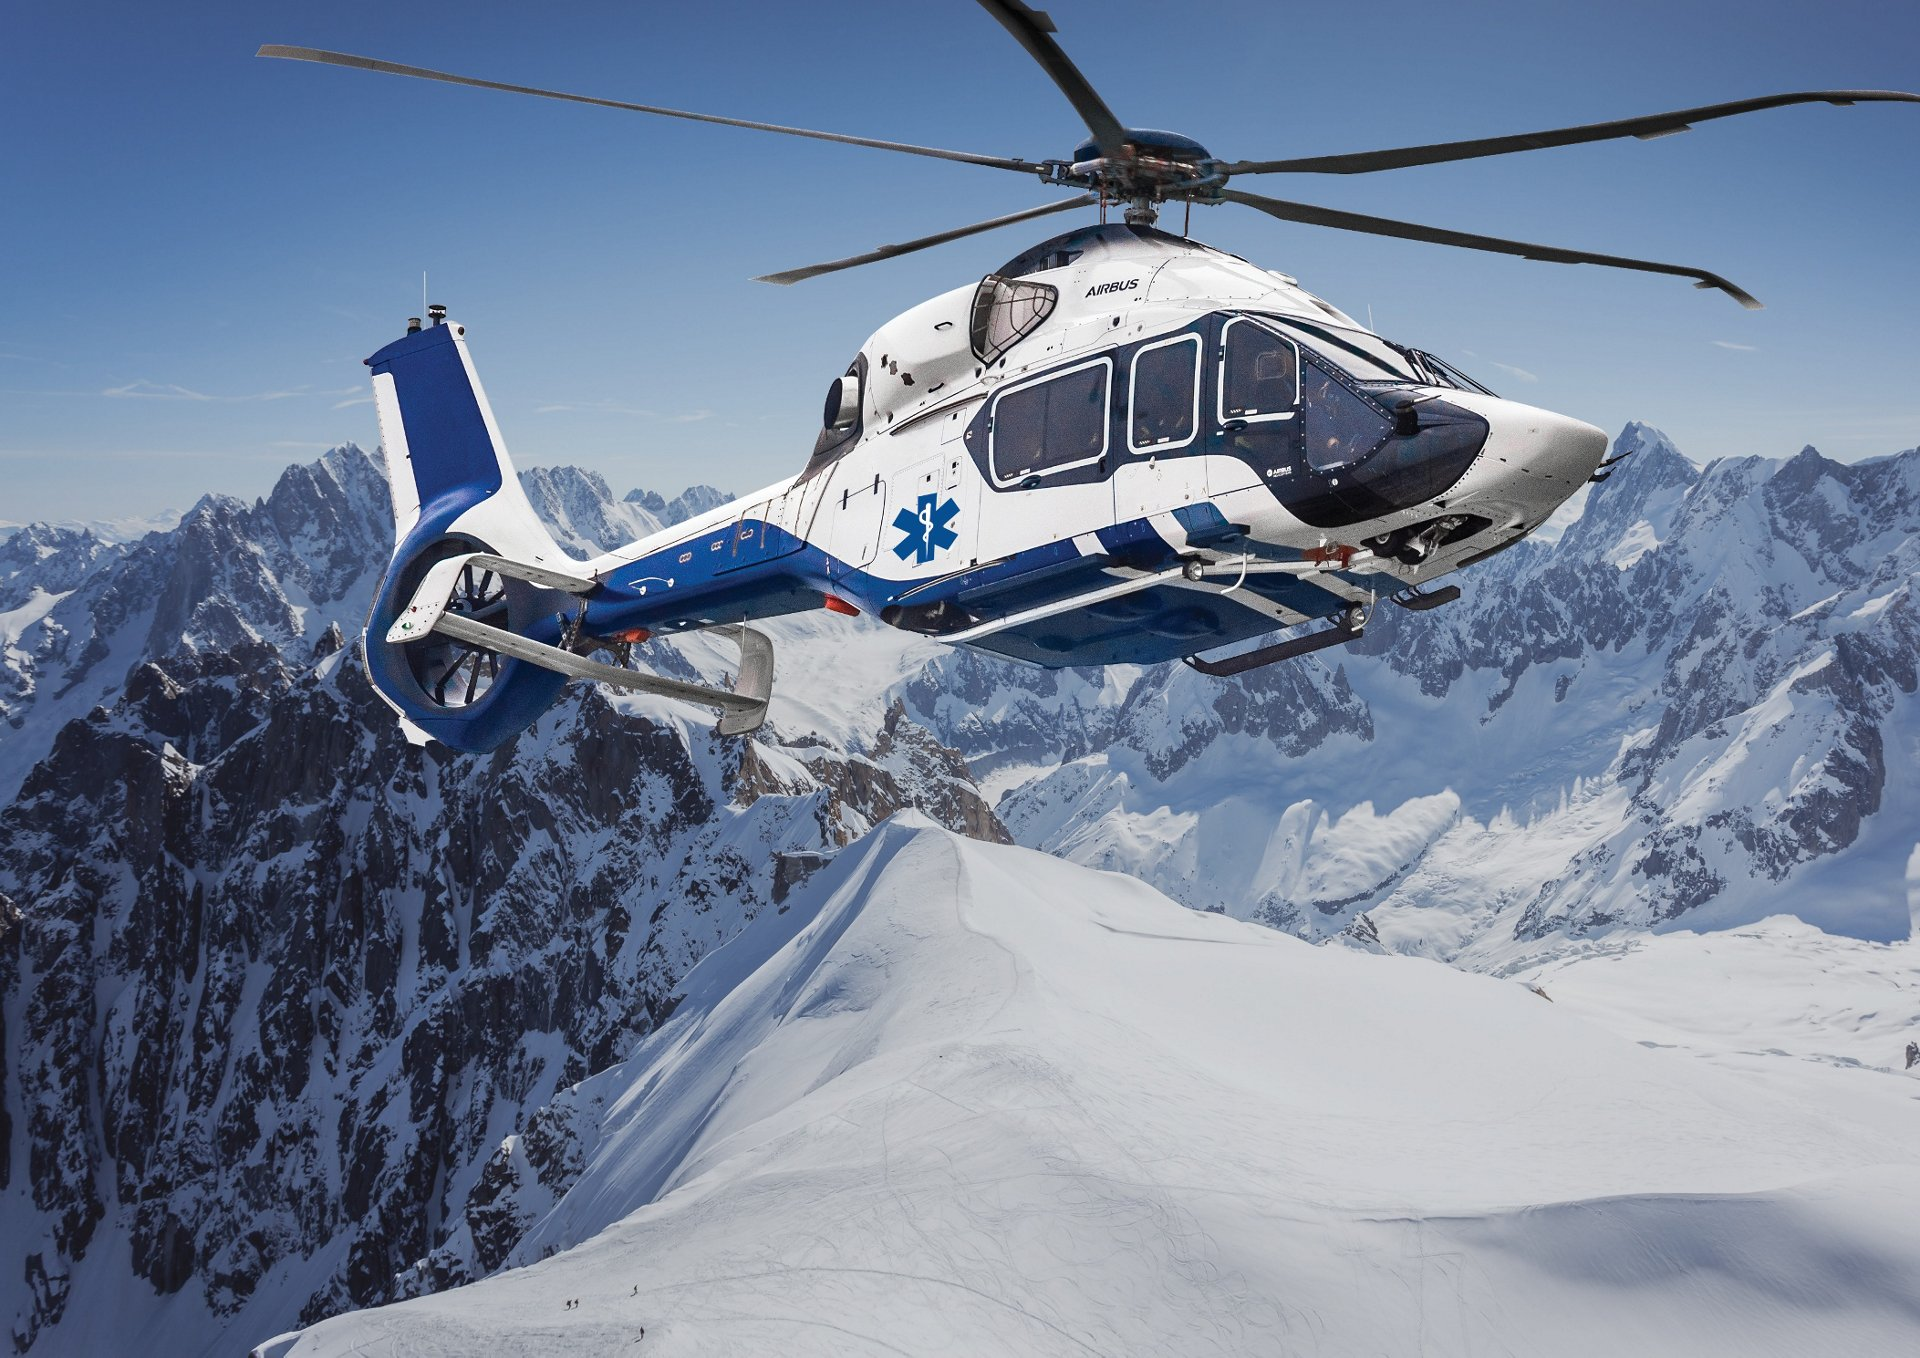 With the largest cabin in its class, wide opening sliding door and roll-in stretcher capacity, the H160 is the next generation high intensive care helicopter ideal for long distances critical patient or incubator transport